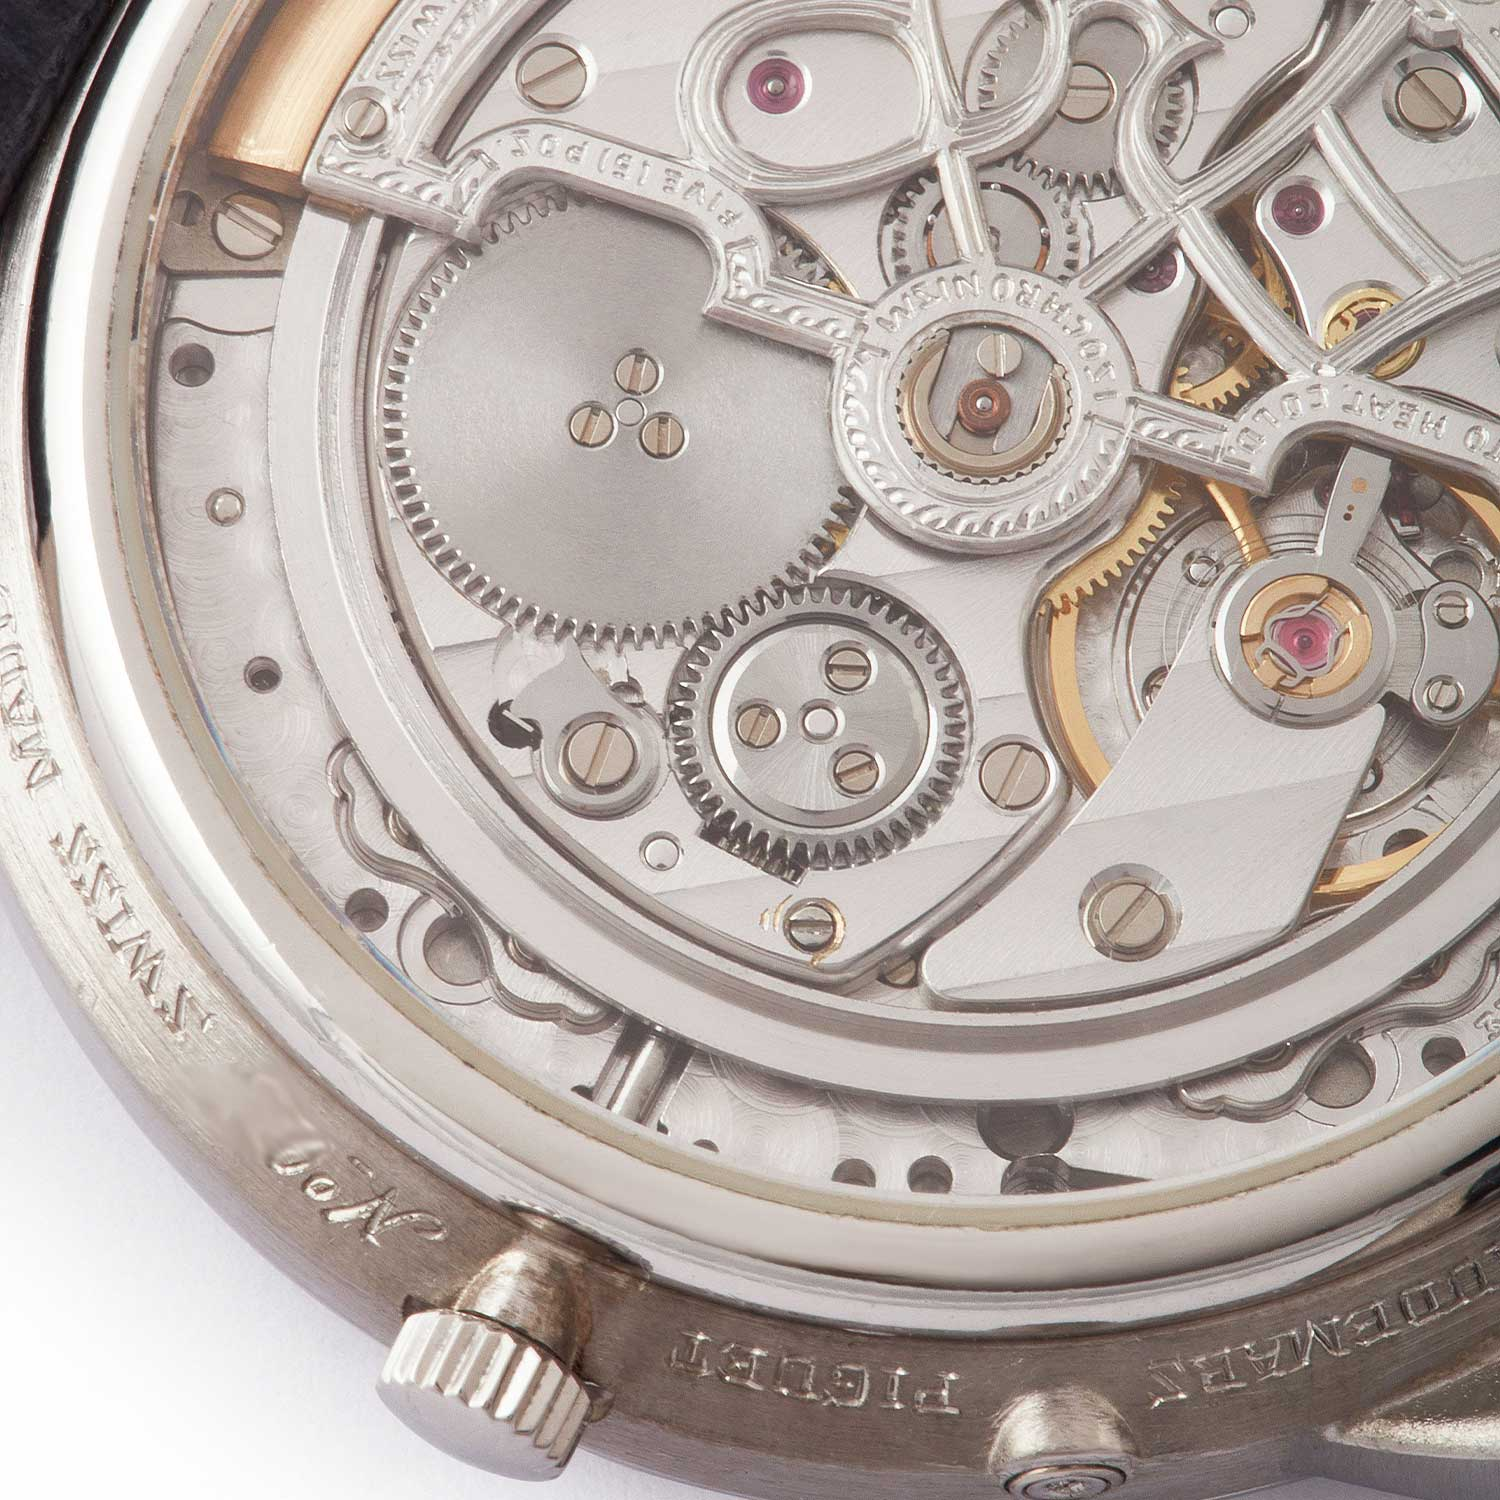 A closer look at the 25661PT's display caseback showing off an ornately decorated version of the calibre 2120/2800; note how the rotor's outter edge is recessed into the movement; the present watch was listed on A Collected Man some time ago (Image: acollectedman.com)